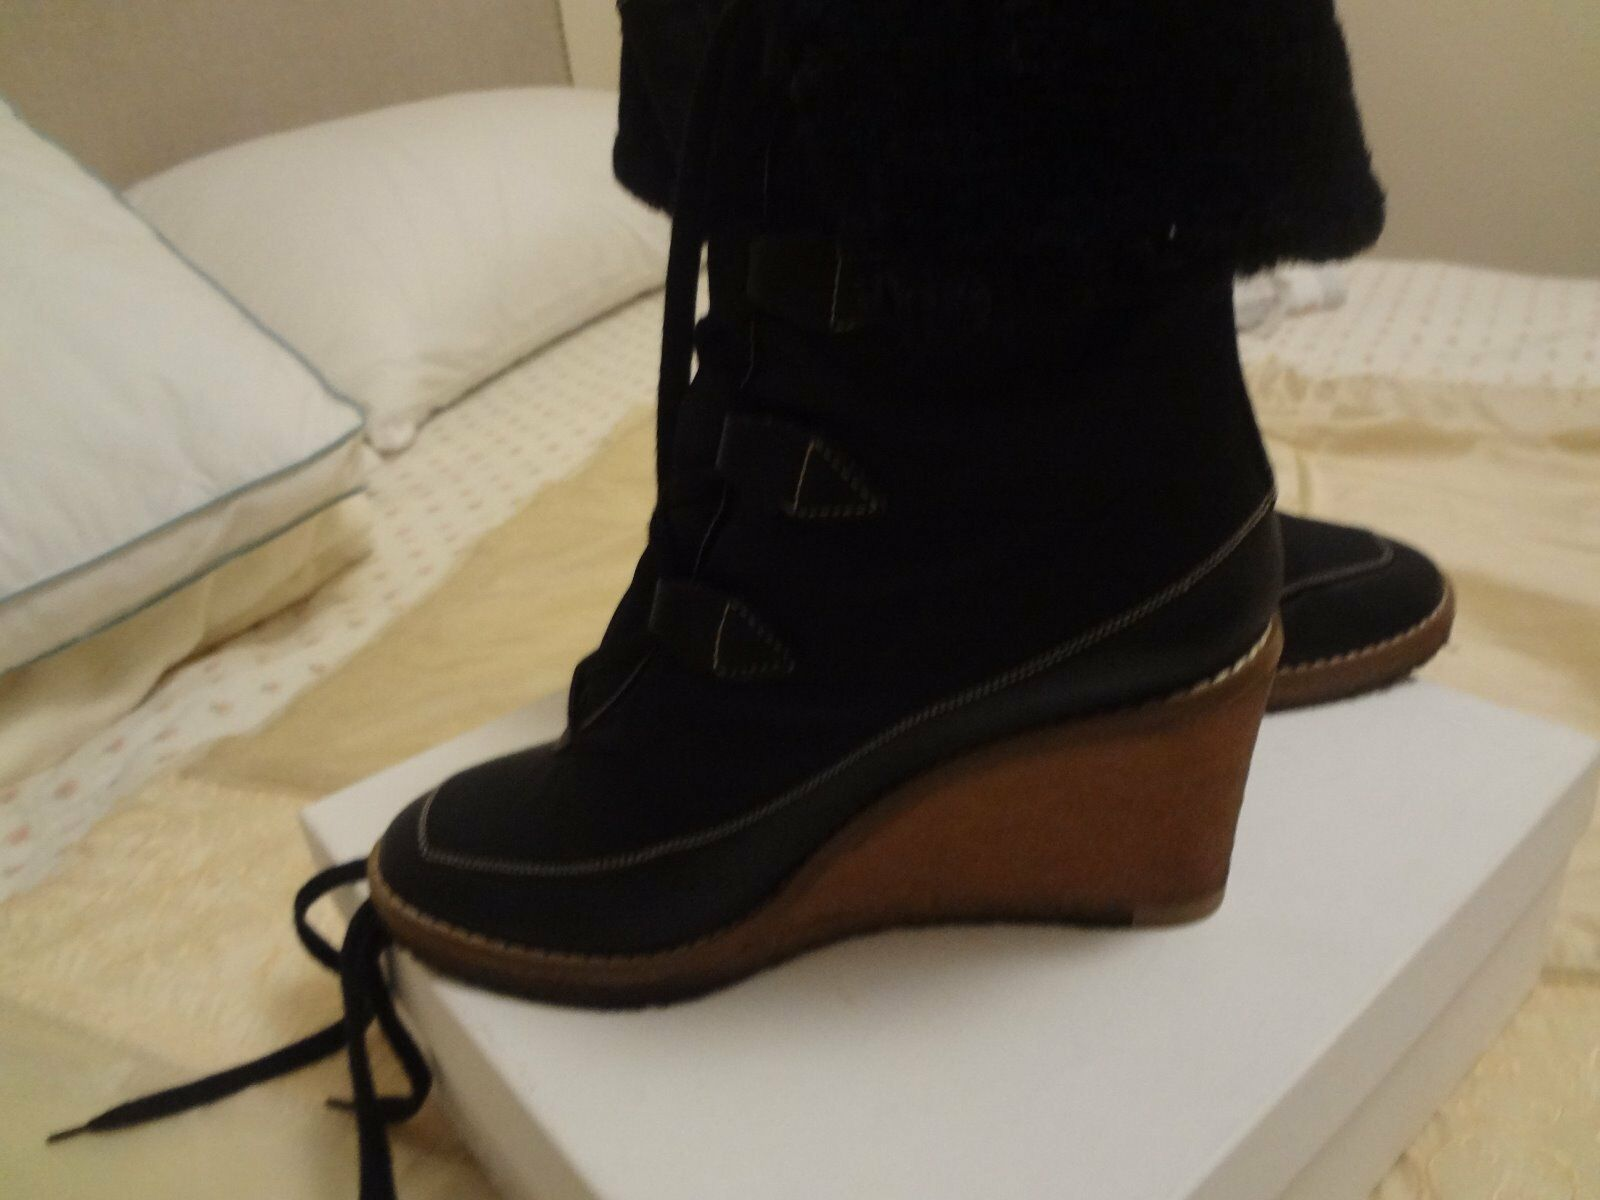 CHLOE Black Lace Up Wedge Ankle Boots Sz 38 GREAT